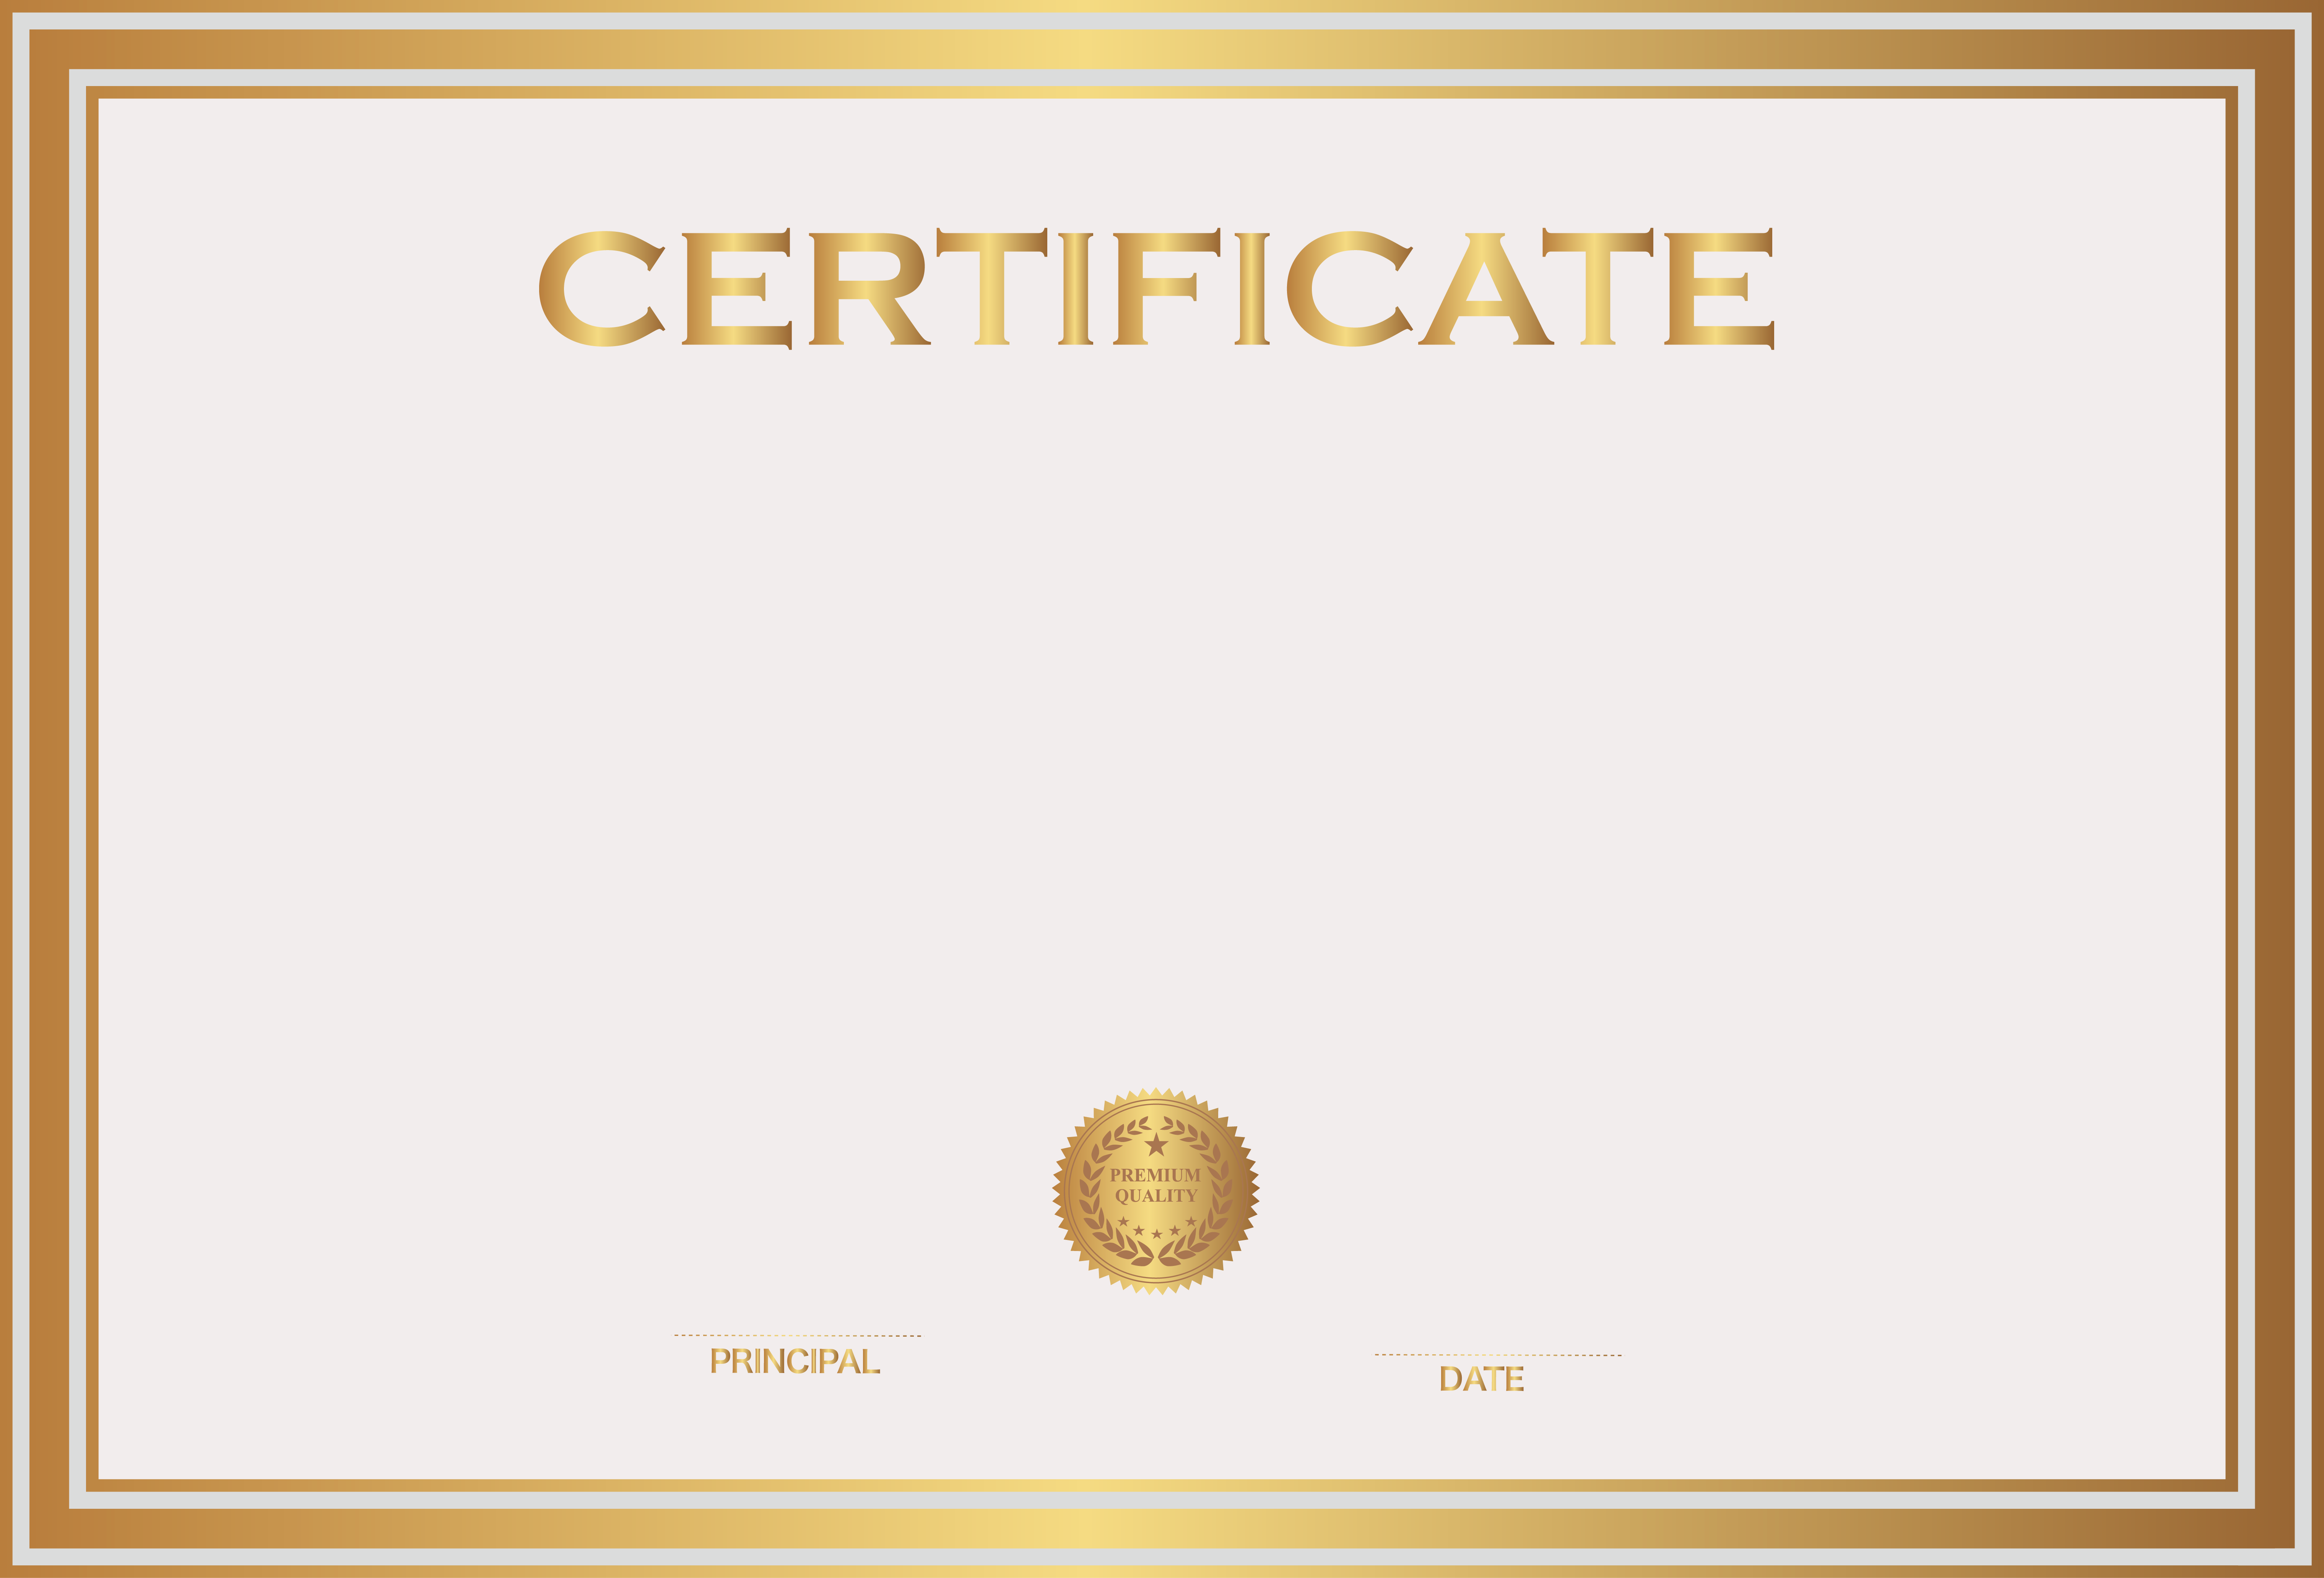 Download certificate template free png image hq png image freepngimg certificate template free png image png image yadclub Images